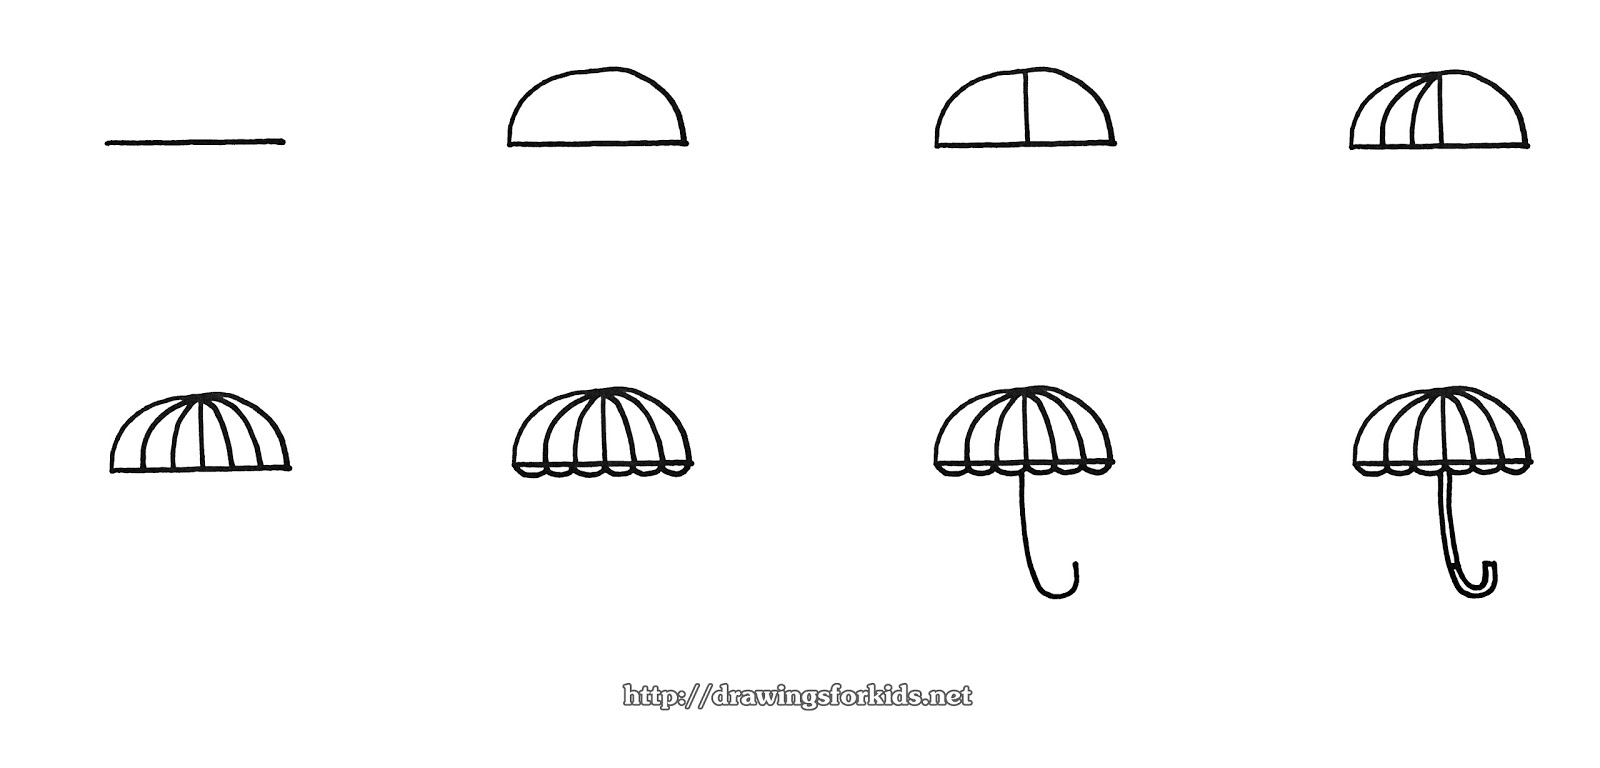 how to draw umbrella step by step how to draw umbrella for kids slide 2 click to enlarge umbrella by to step how draw step